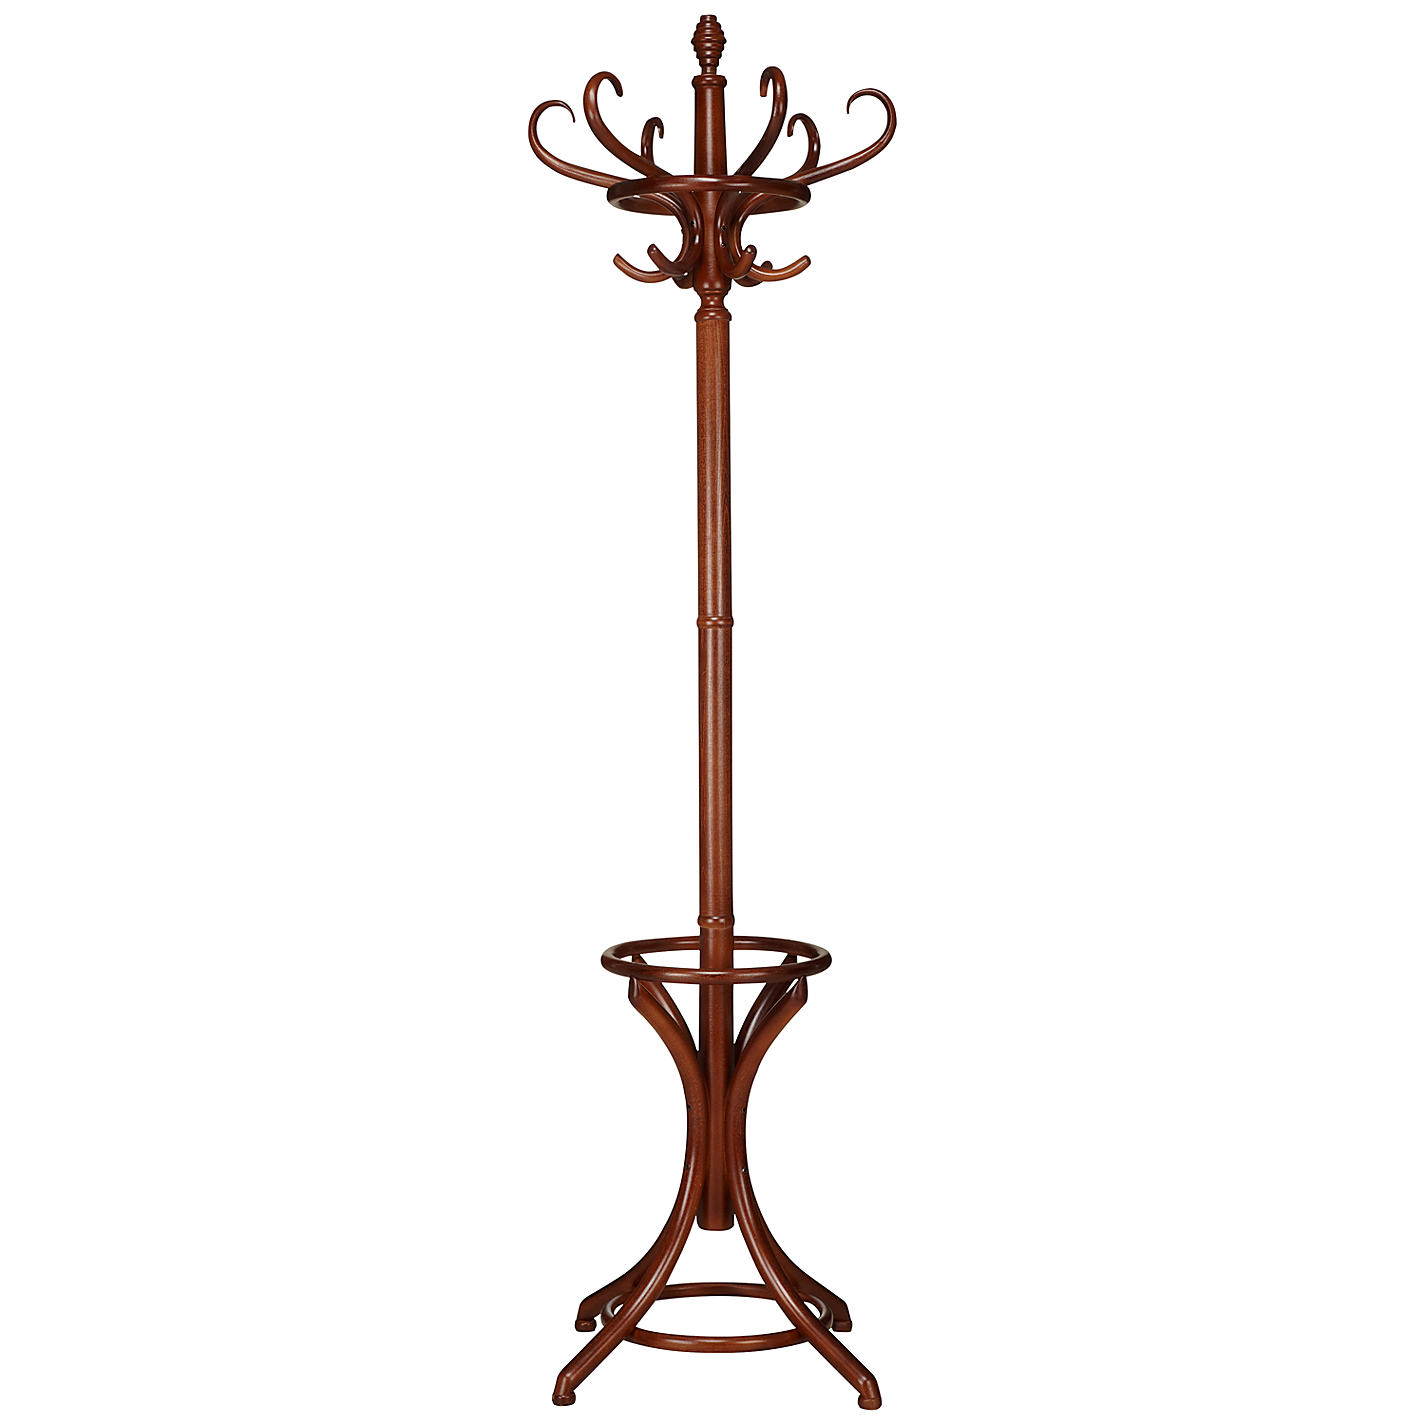 coat stand or coat rack  WordReference Forums